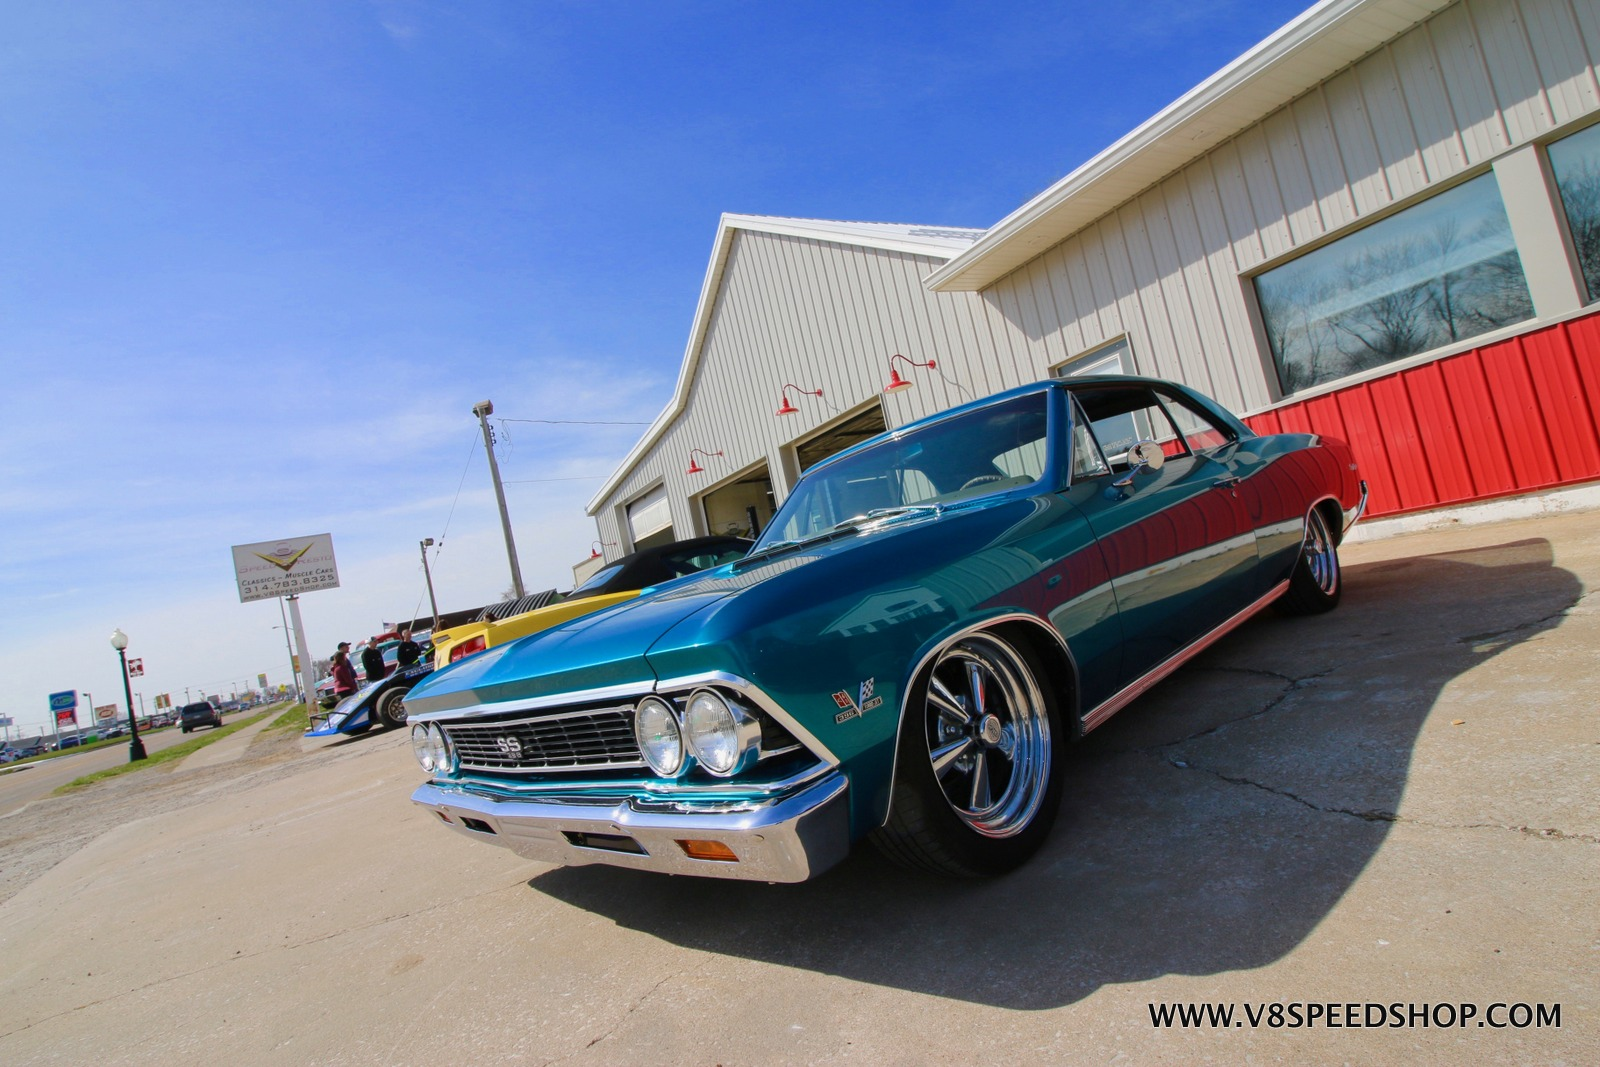 "Photos From The 2019 V8 Speed and Resto Shop ""Dust Off"" Spring Open House"